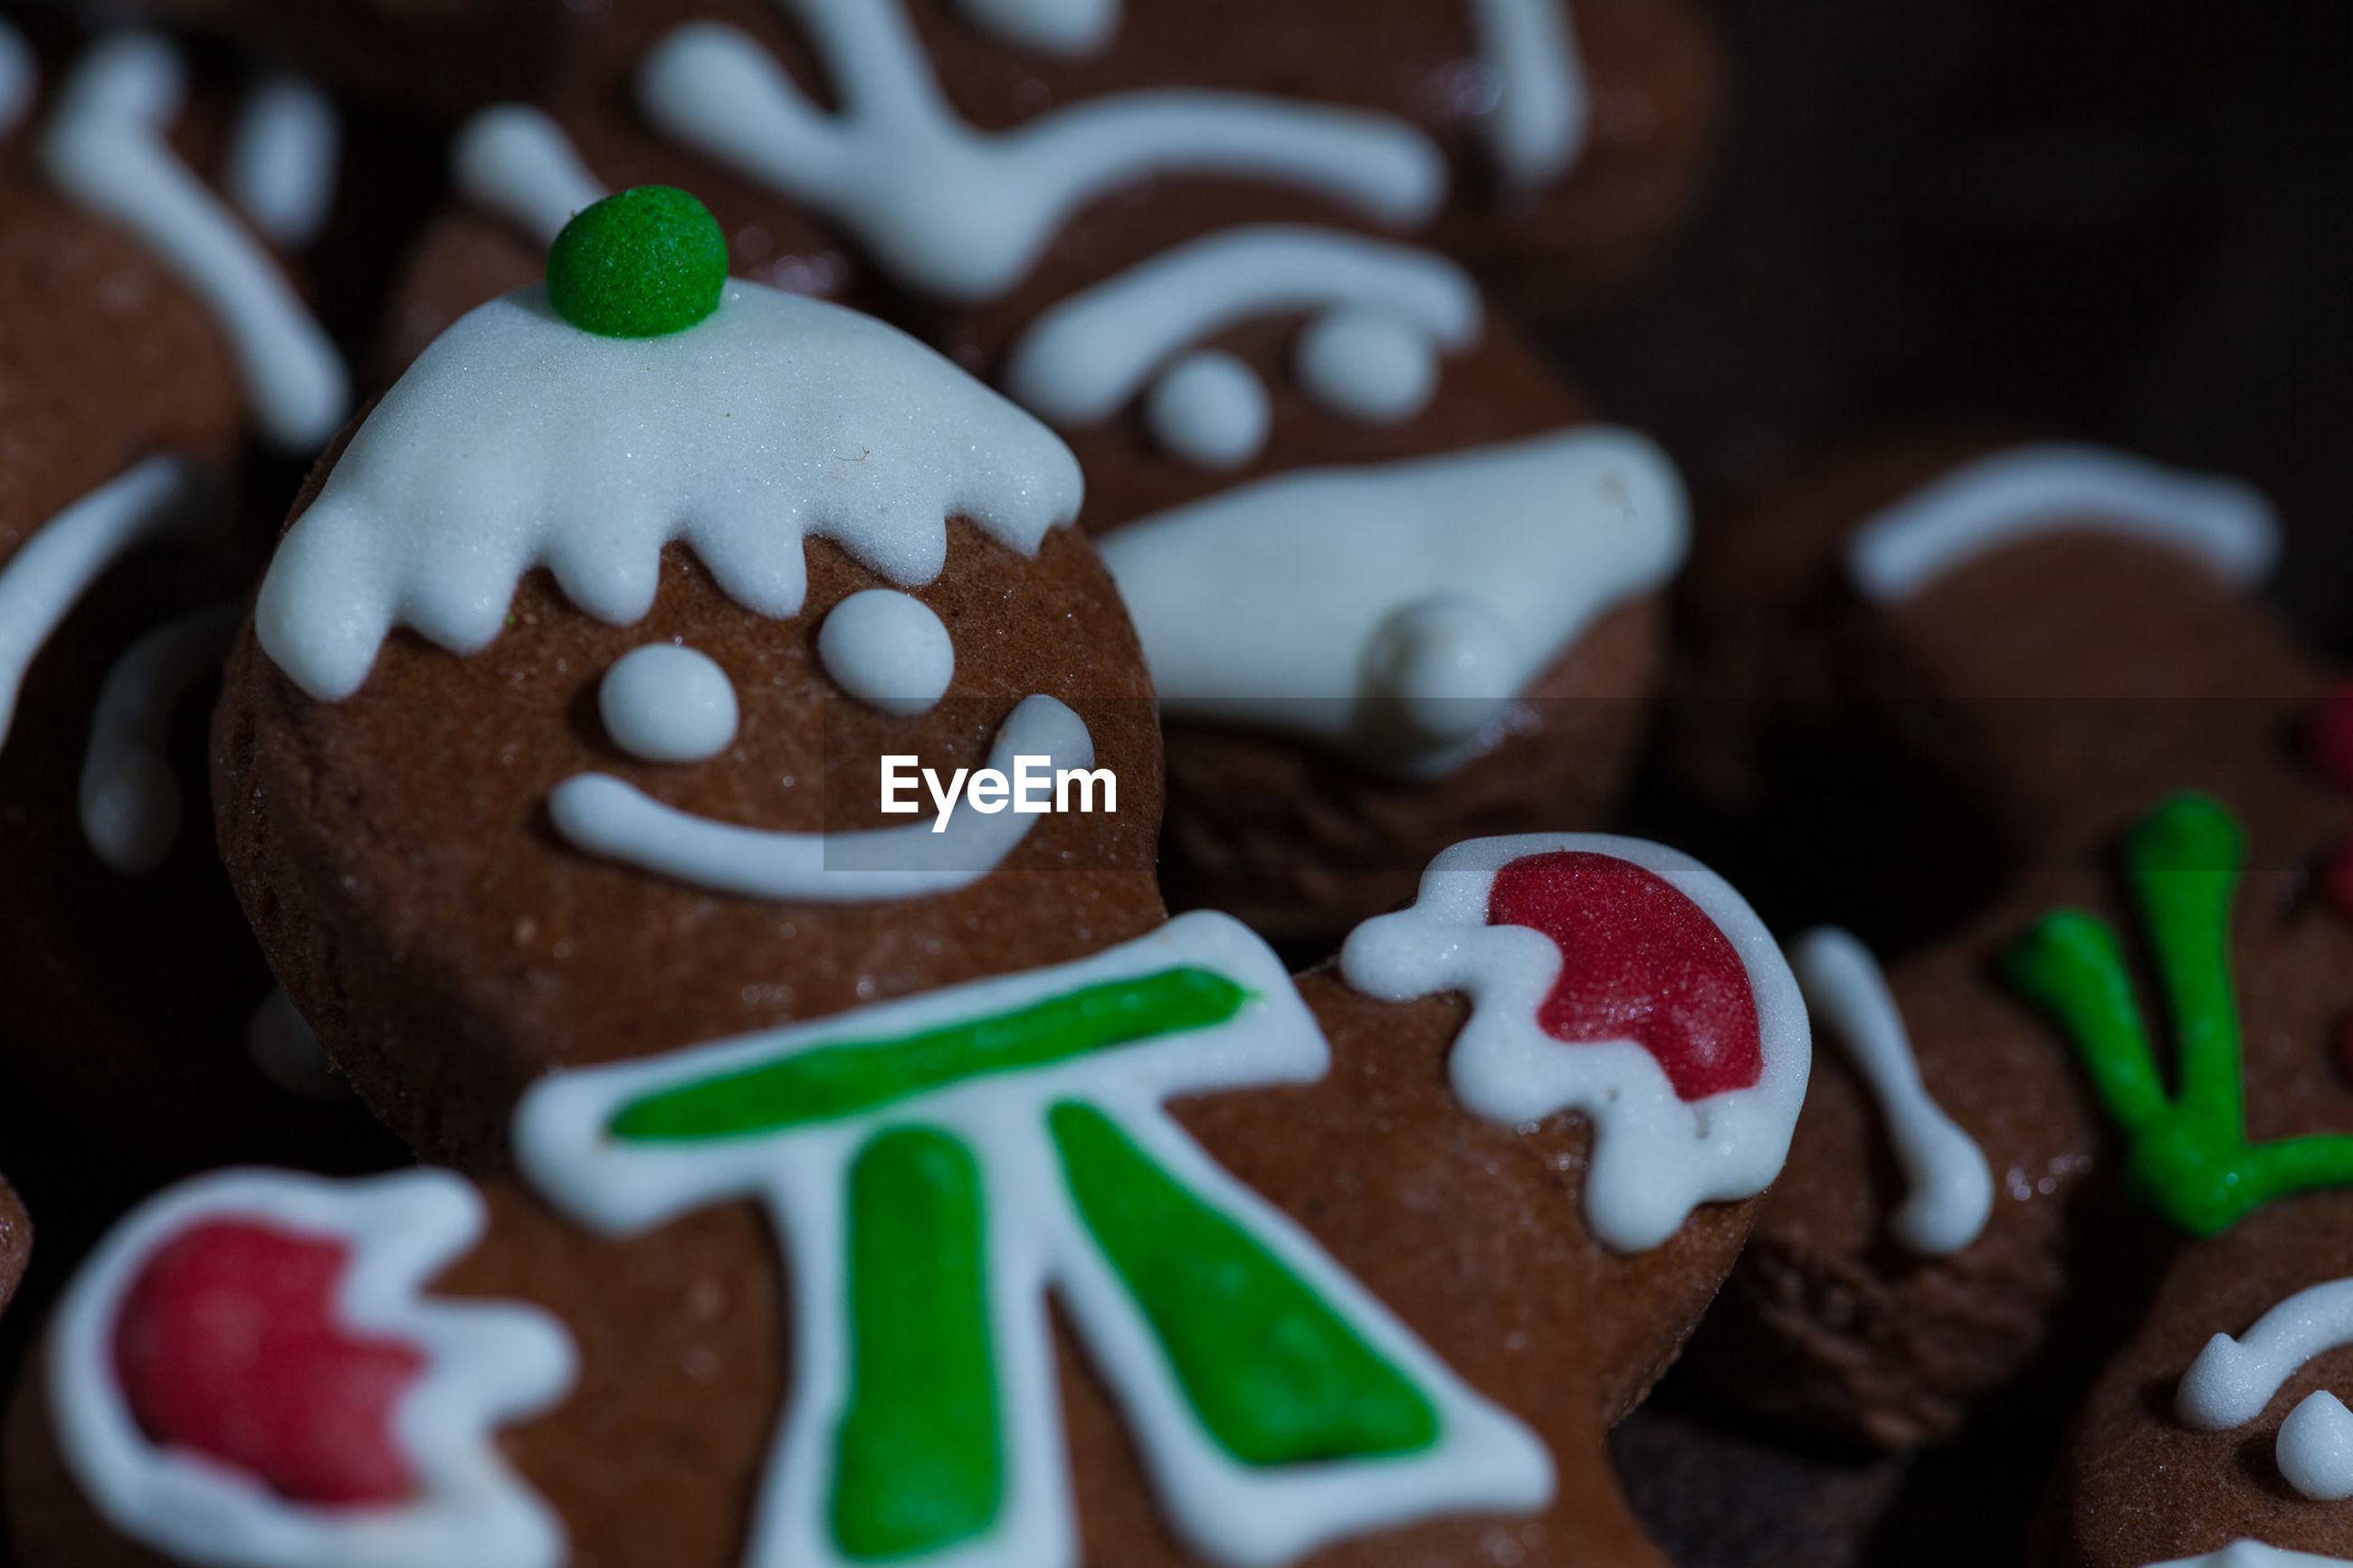 CLOSE-UP OF COOKIES ON TABLE AT CHRISTMAS TREE